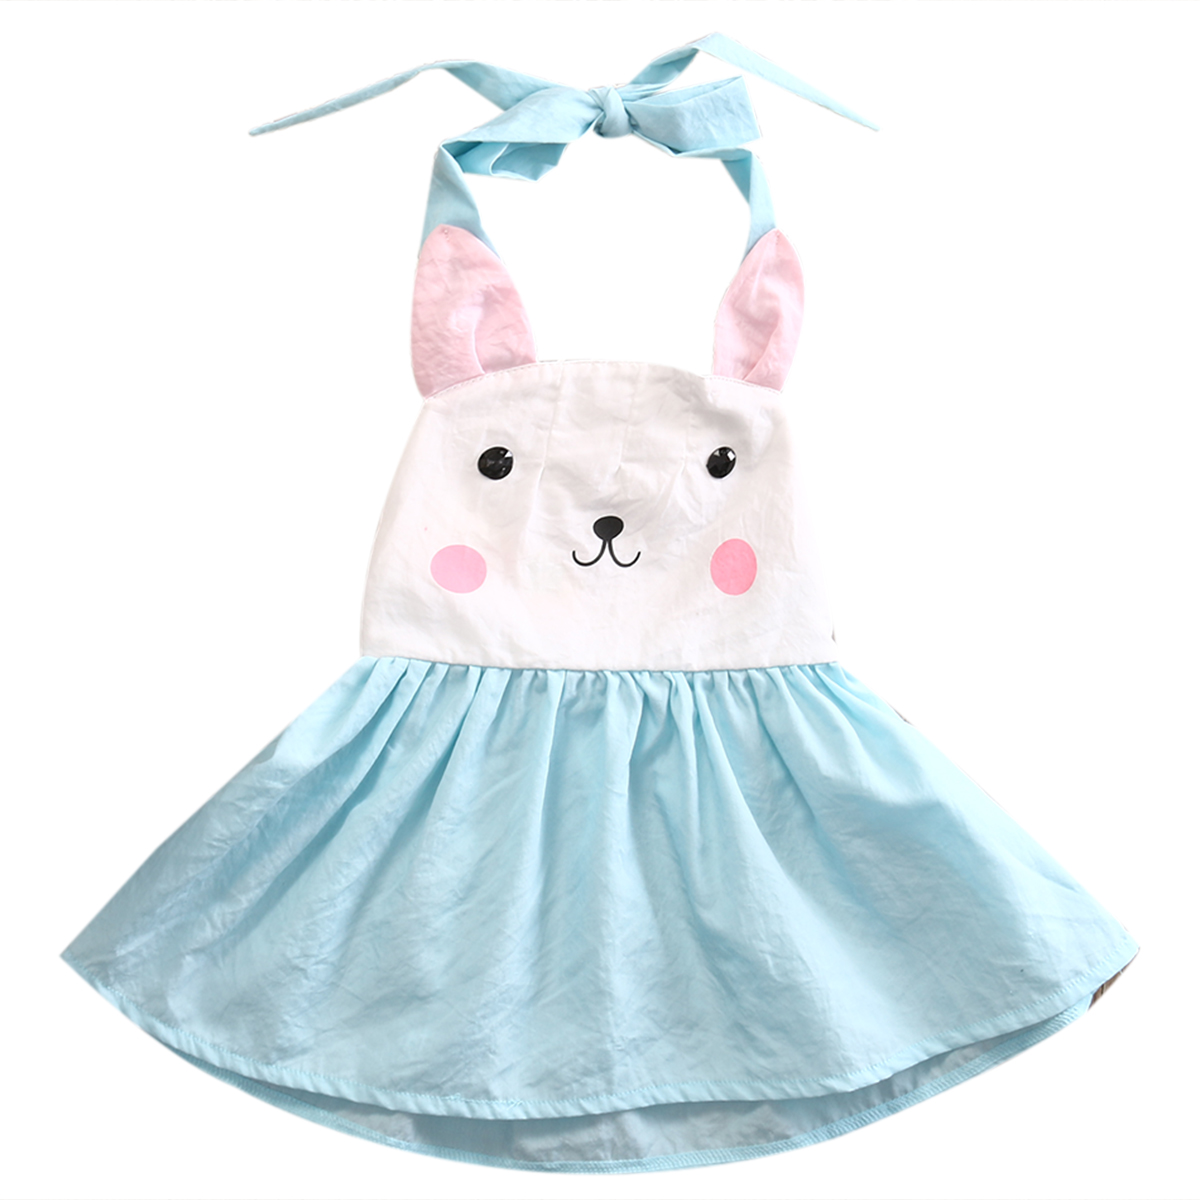 Kids Baby Girls Clothing Toddler Little Bunny Summer Casual Cute Party Dress Clothes Outfits